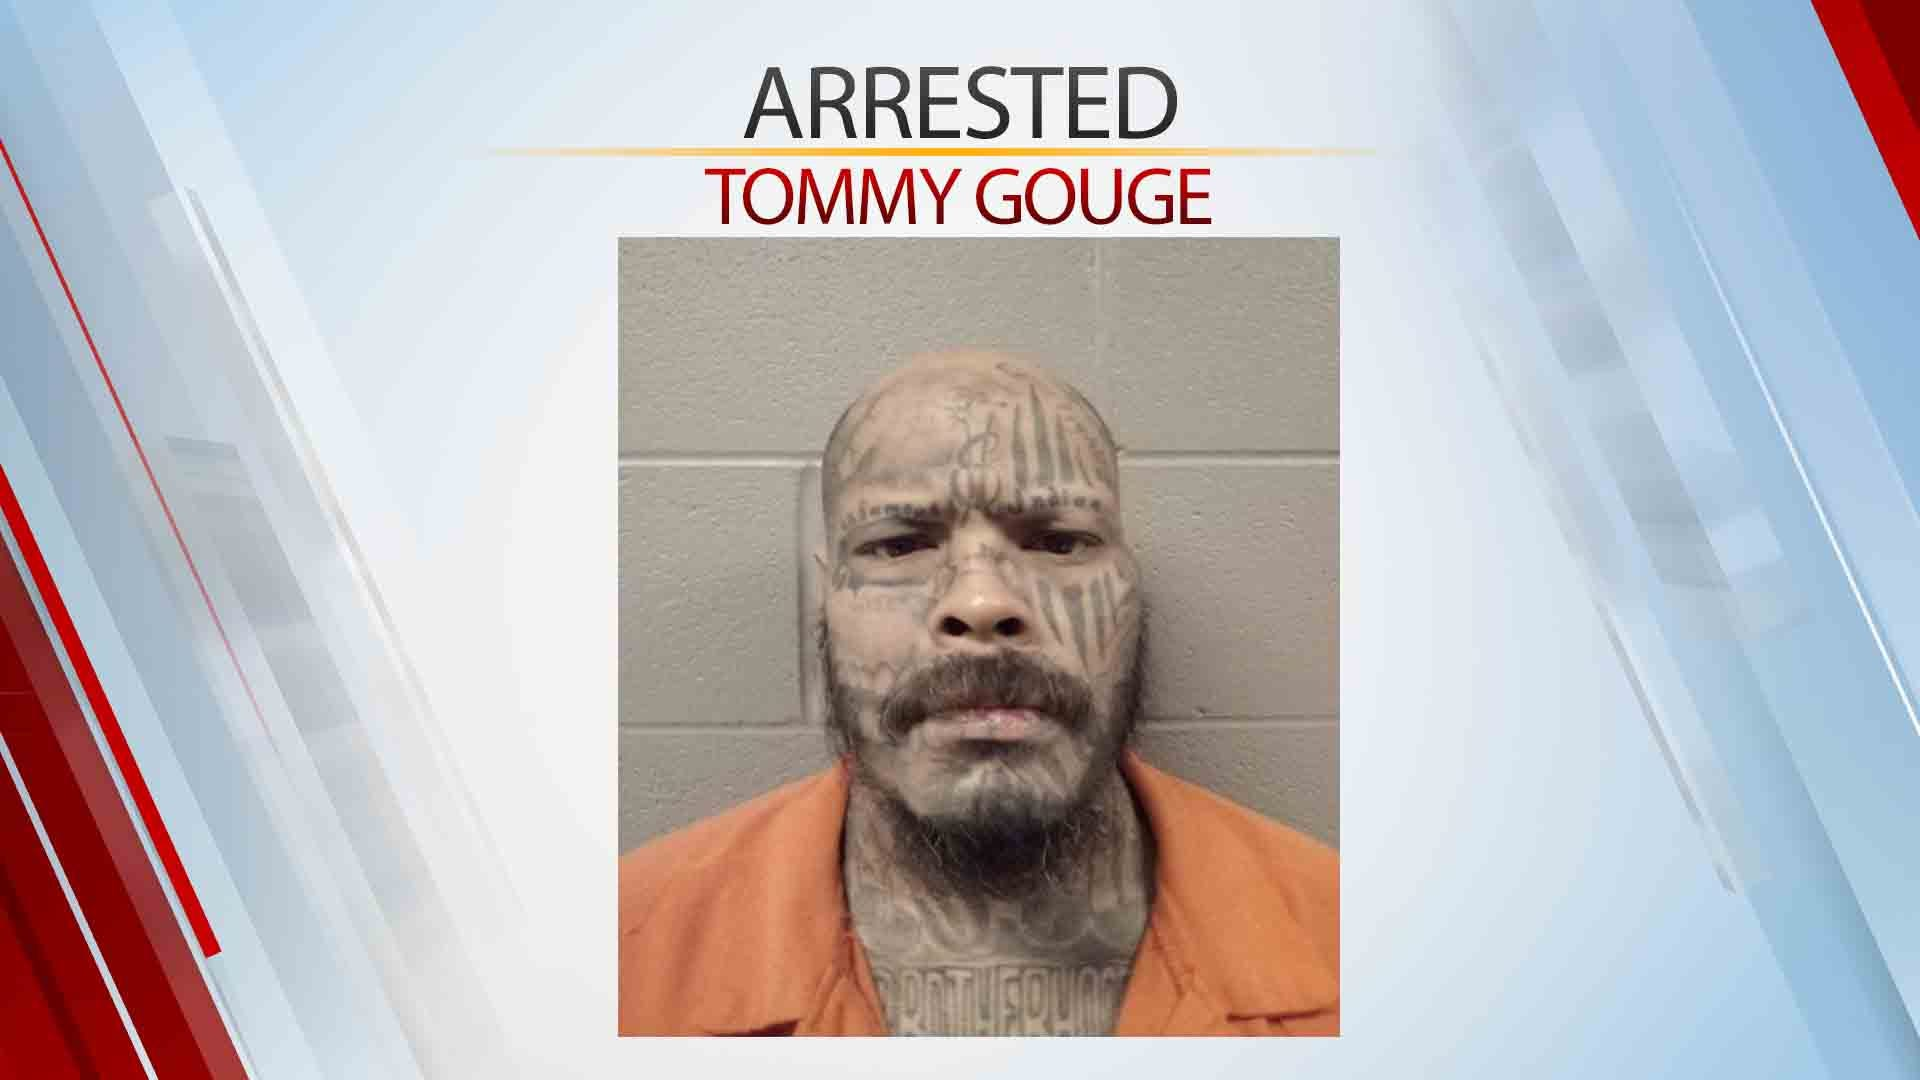 Update: Man Arrested After Murder In Okfuskee County, Sheriff Says